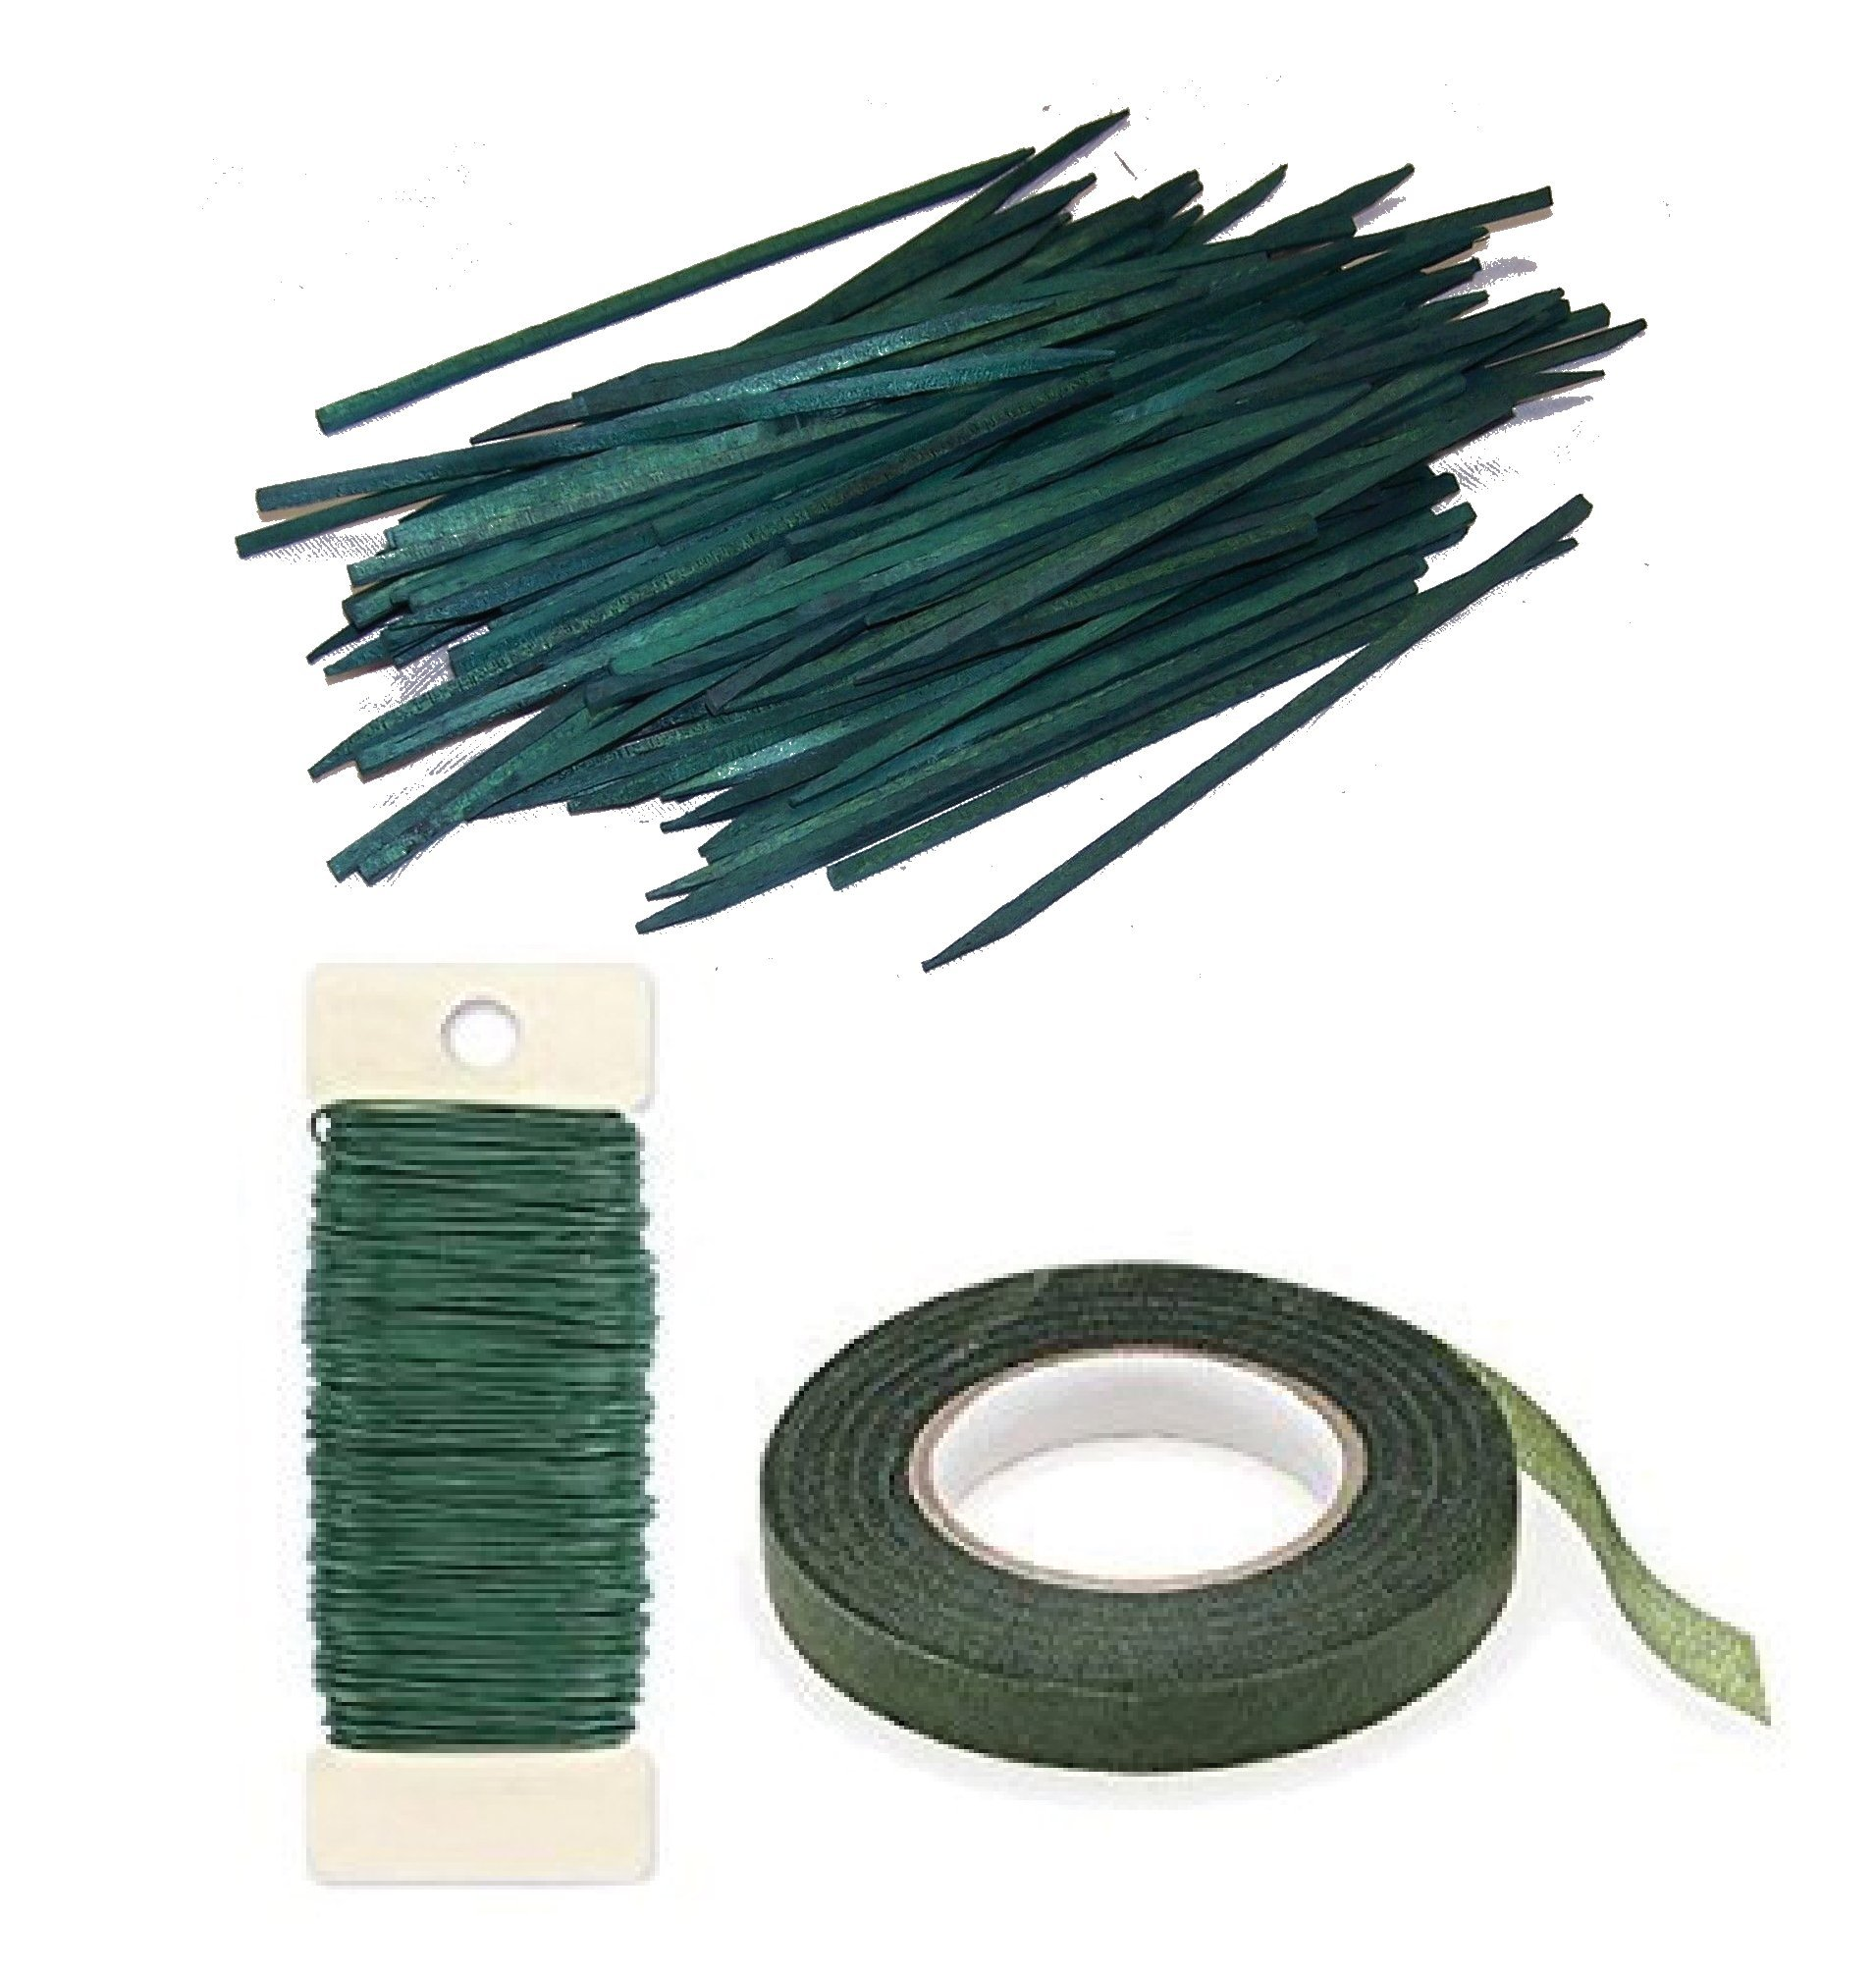 Wooden Wood Craft Picks Stakes 100 Count & 22 Gauge Paddle Wire Green Floral Tape Bundle w/ Flower Crafting eGuide (8 Inch Pick Bundle)